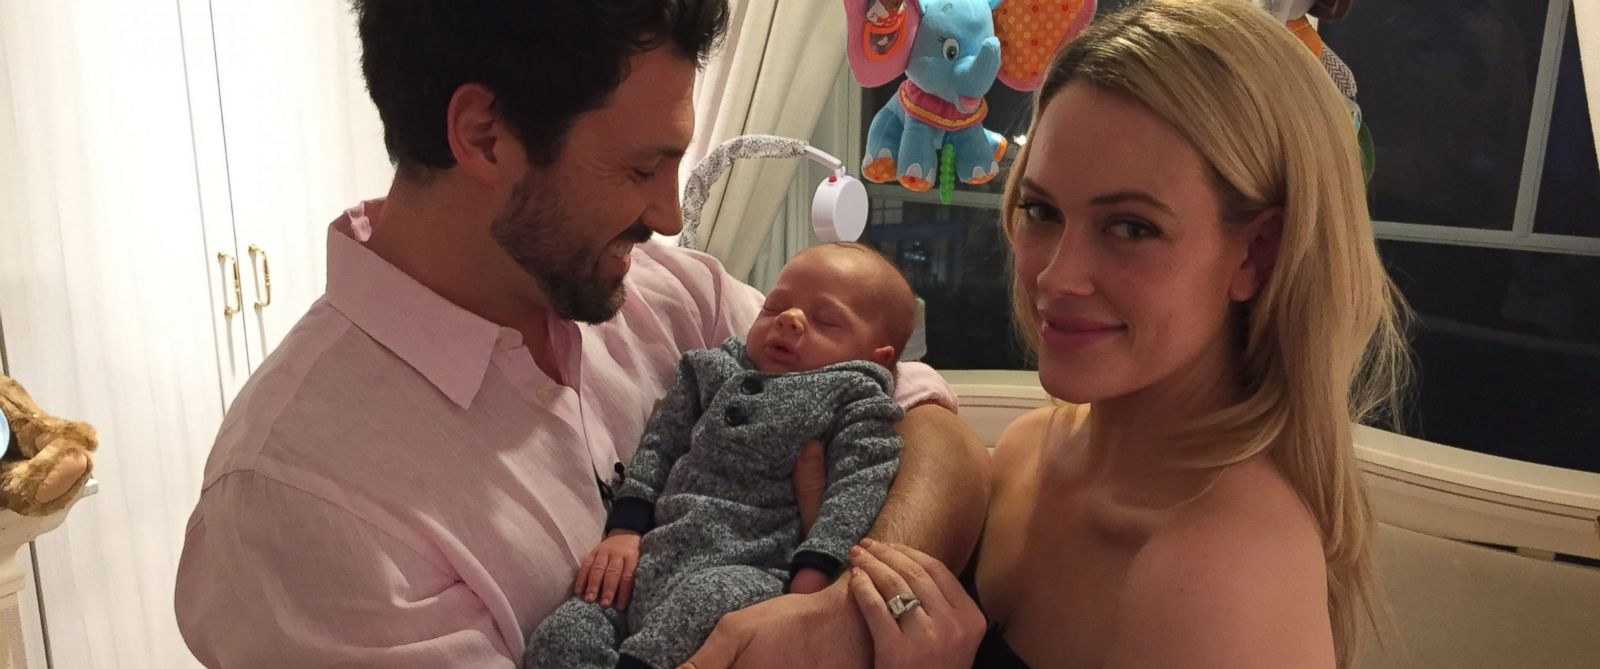 Maksim Chmerkovskiy and Peta Murgatryod with their first son Shai Aleksander